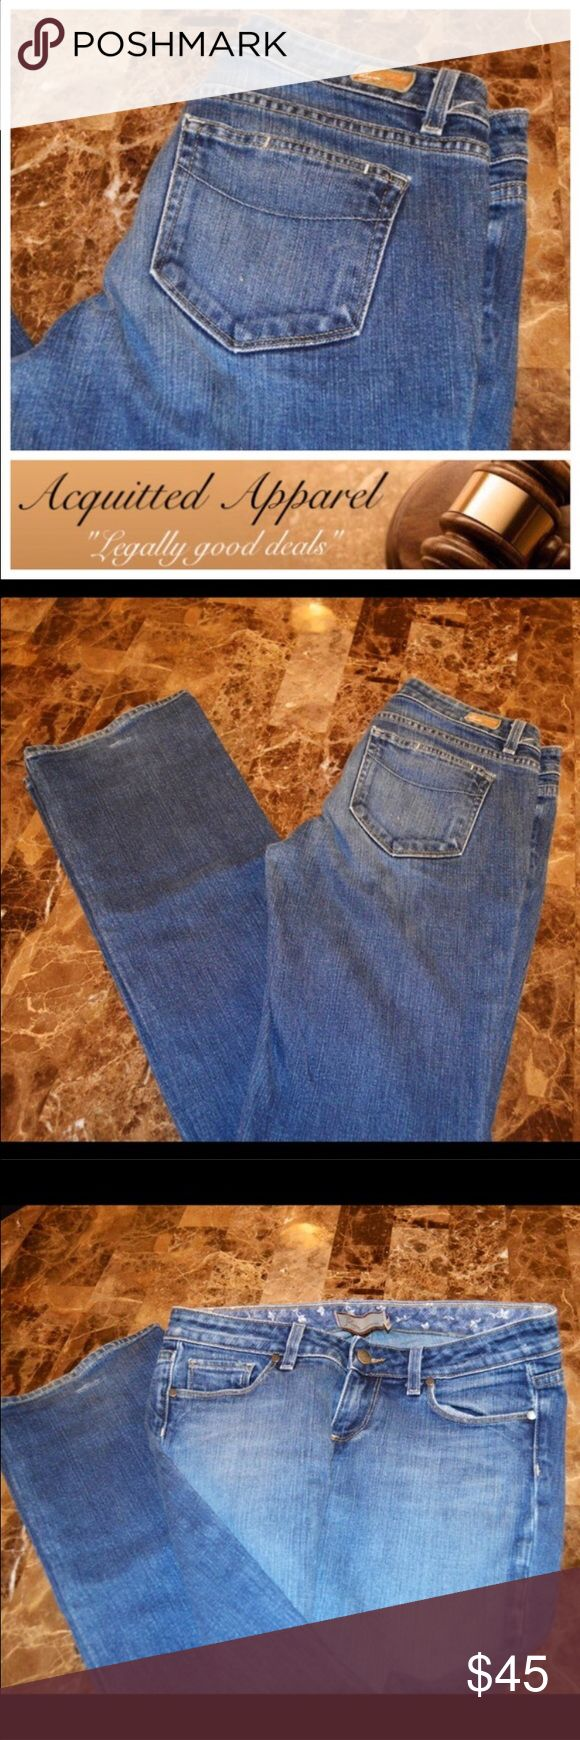 """Paige Jeans Benedict Canyon Straight Leg 34 inseam Paige Jeans Benedict Canyon Size 28 Excellent Condition Approx. 33.5"""" inseam Paige Jeans Jeans Straight Leg"""